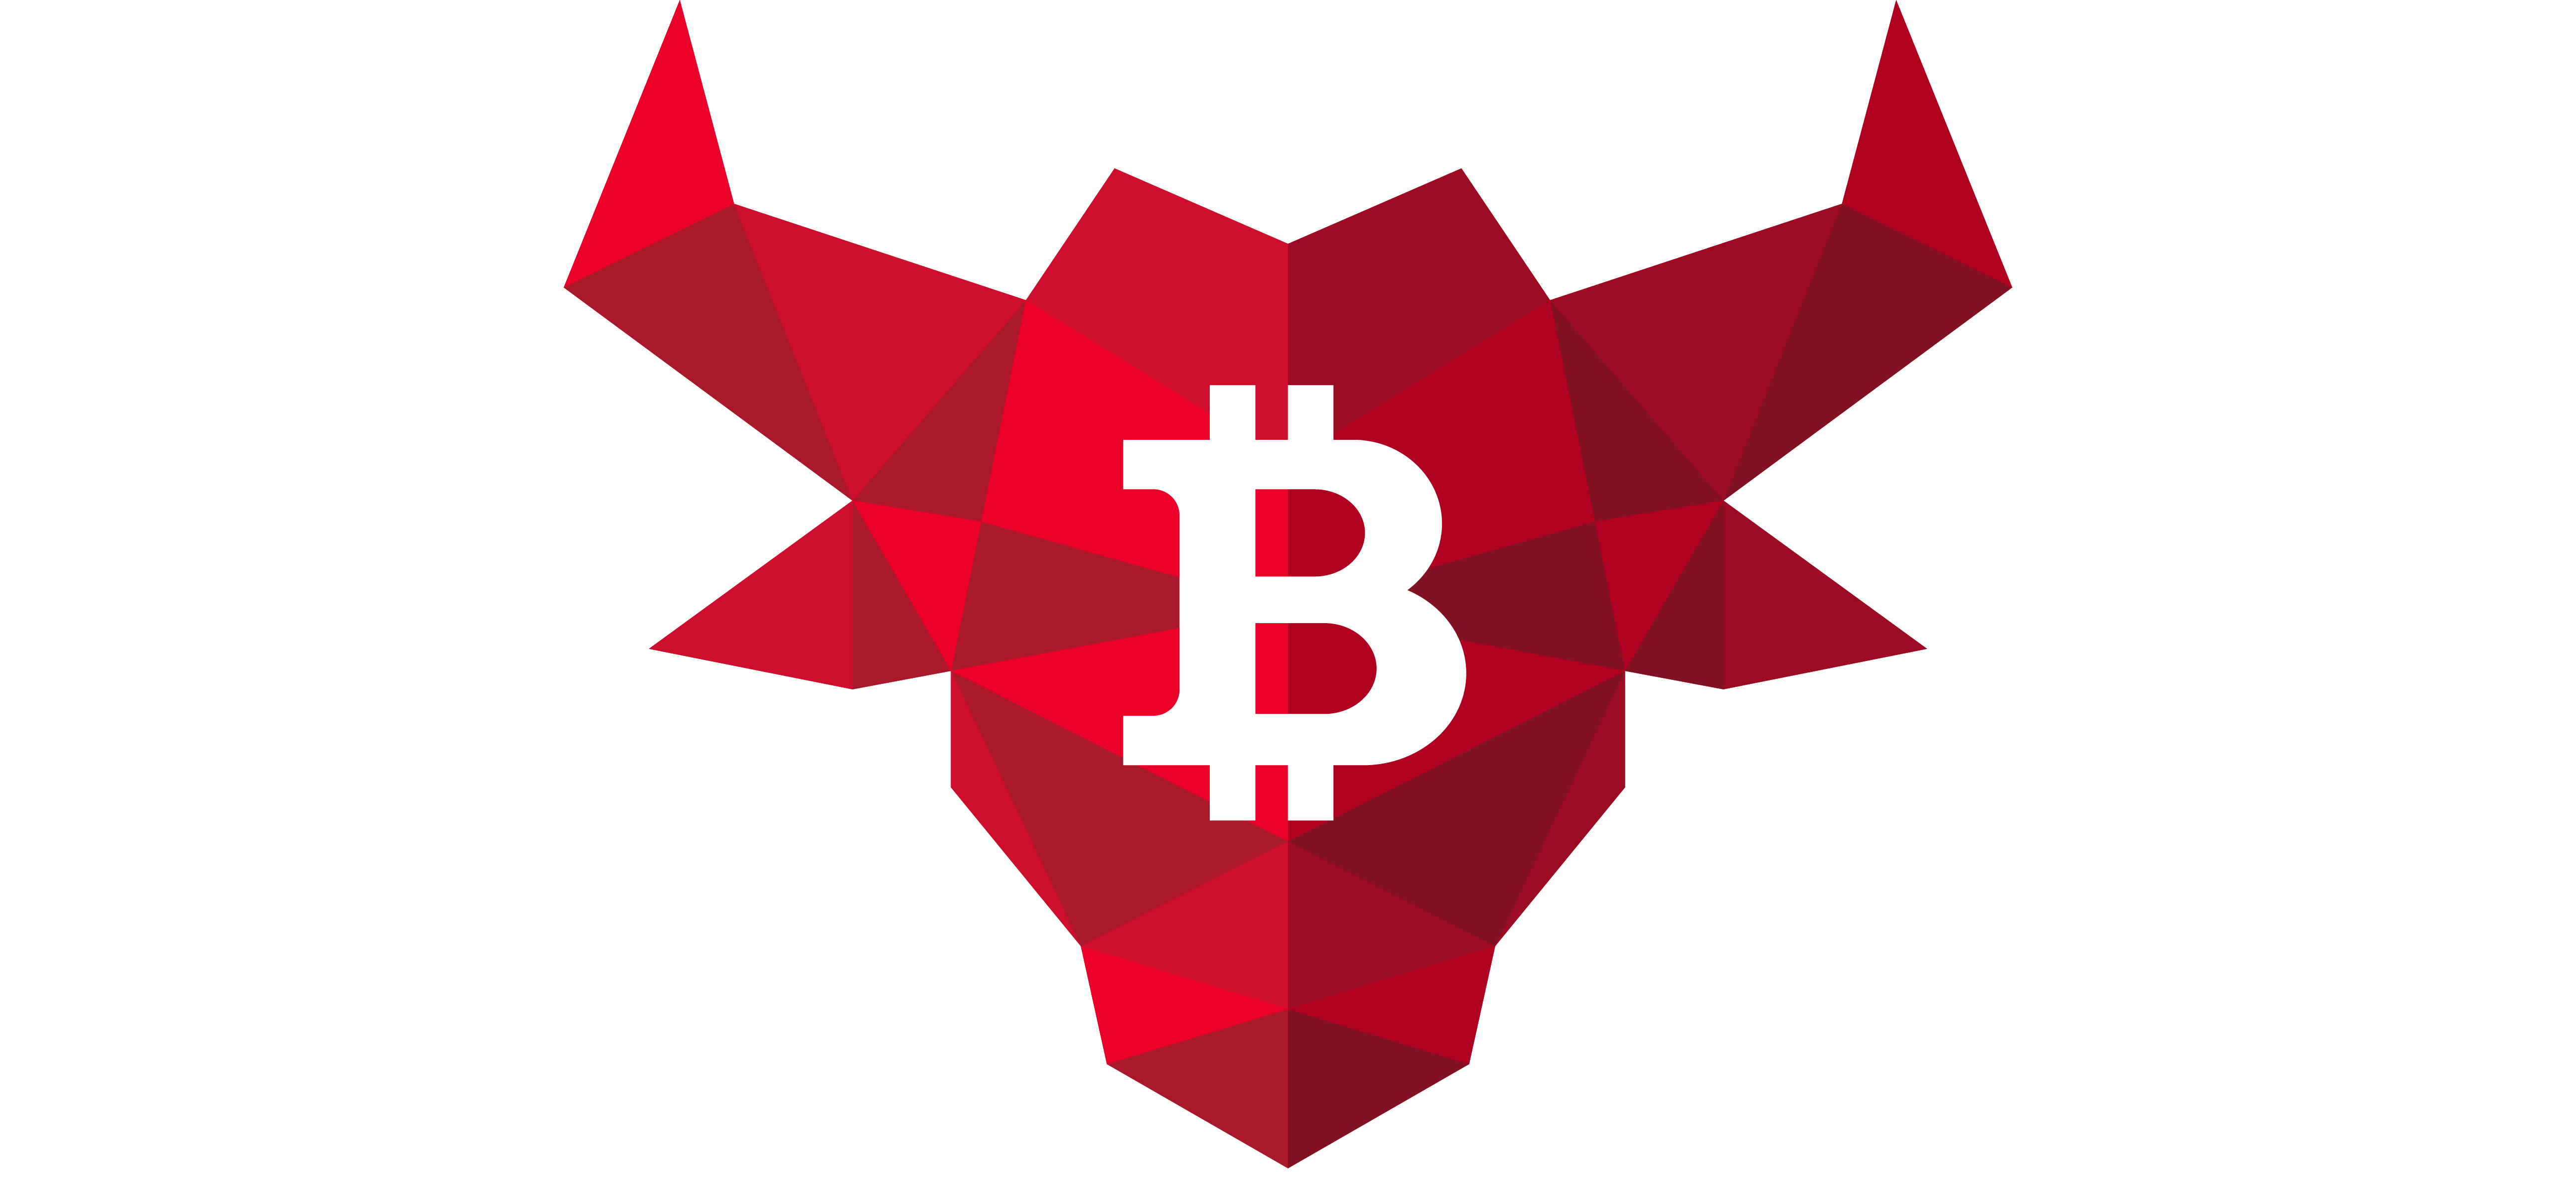 Peer-to-peer prepaid payments by Bull Bitcoin